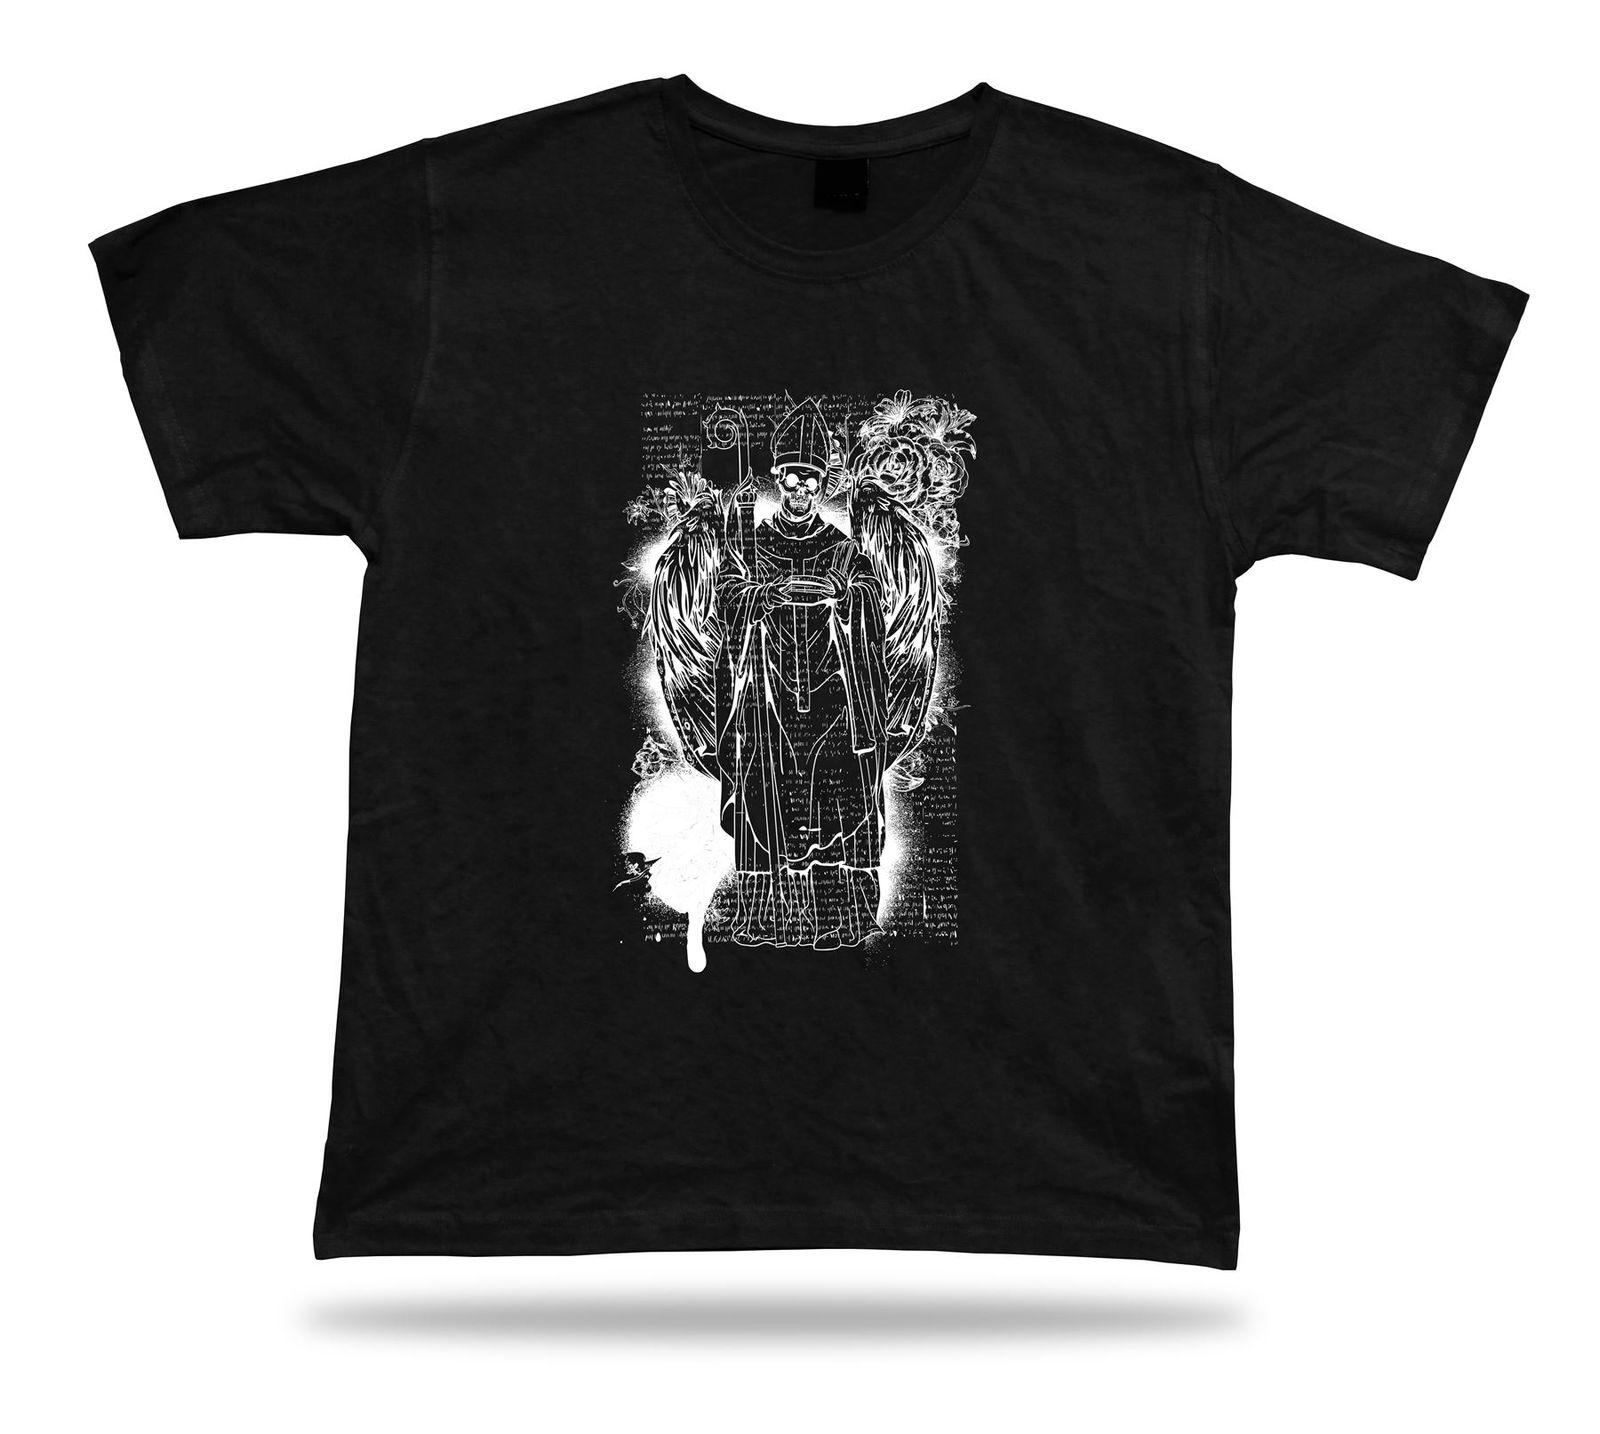 Angel of Death Demon Wings rose floral tshirt design special birthday gift tee